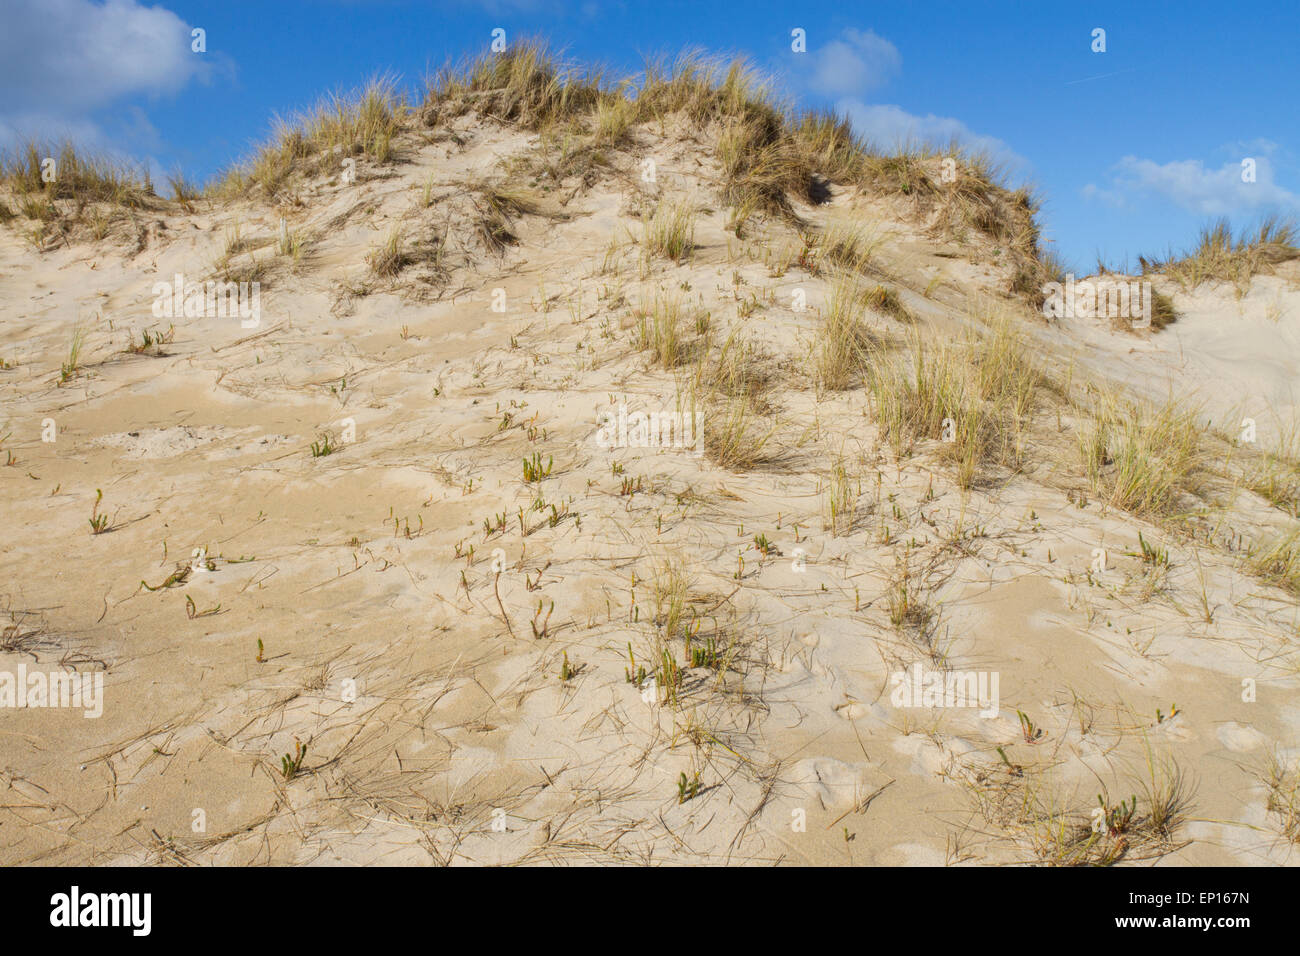 Sand dune habitat at Upton Towans National Nature Reserve, St. Ives Bay, Cornwall, England. March. - Stock Image